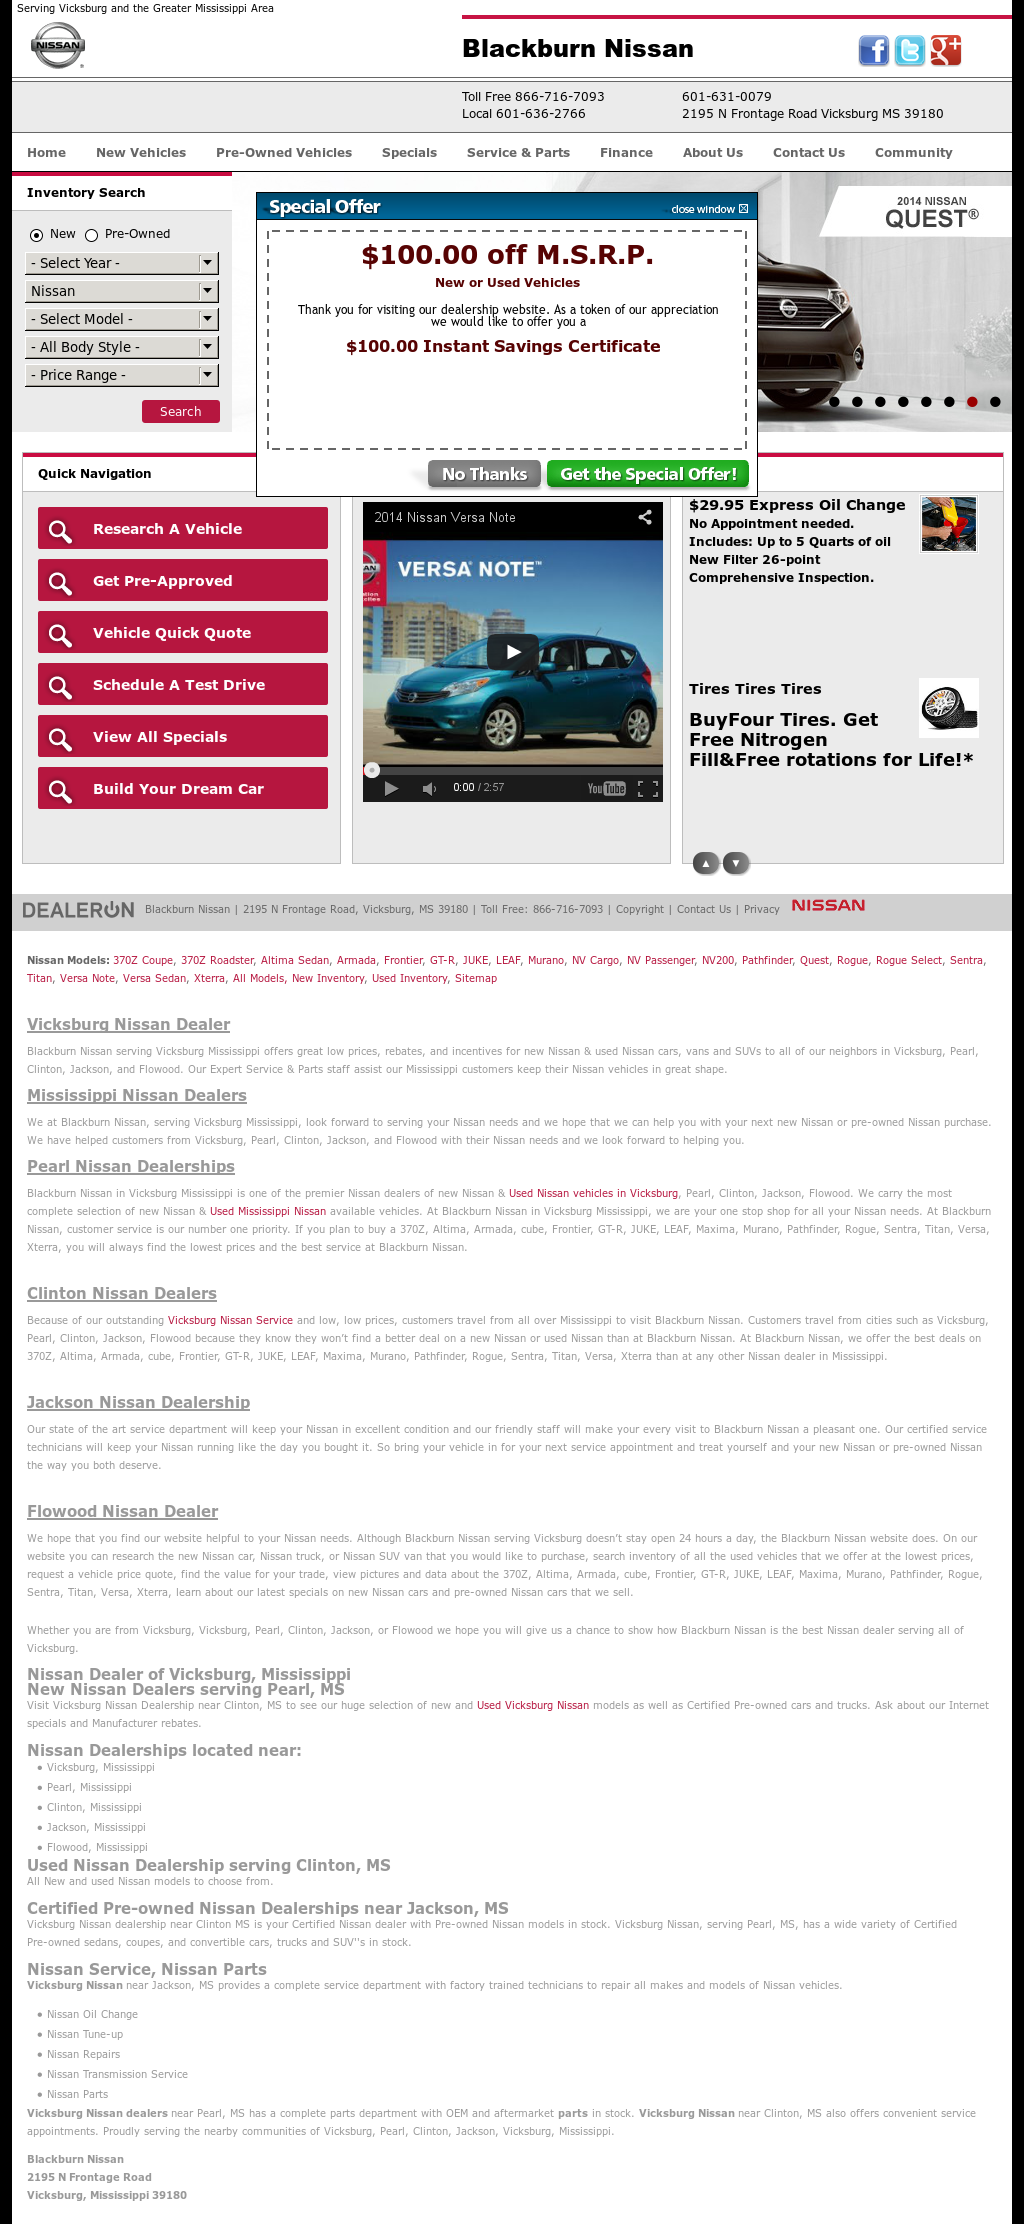 Marvelous Blackburn Nissan Competitors, Revenue And Employees   Owler Company Profile